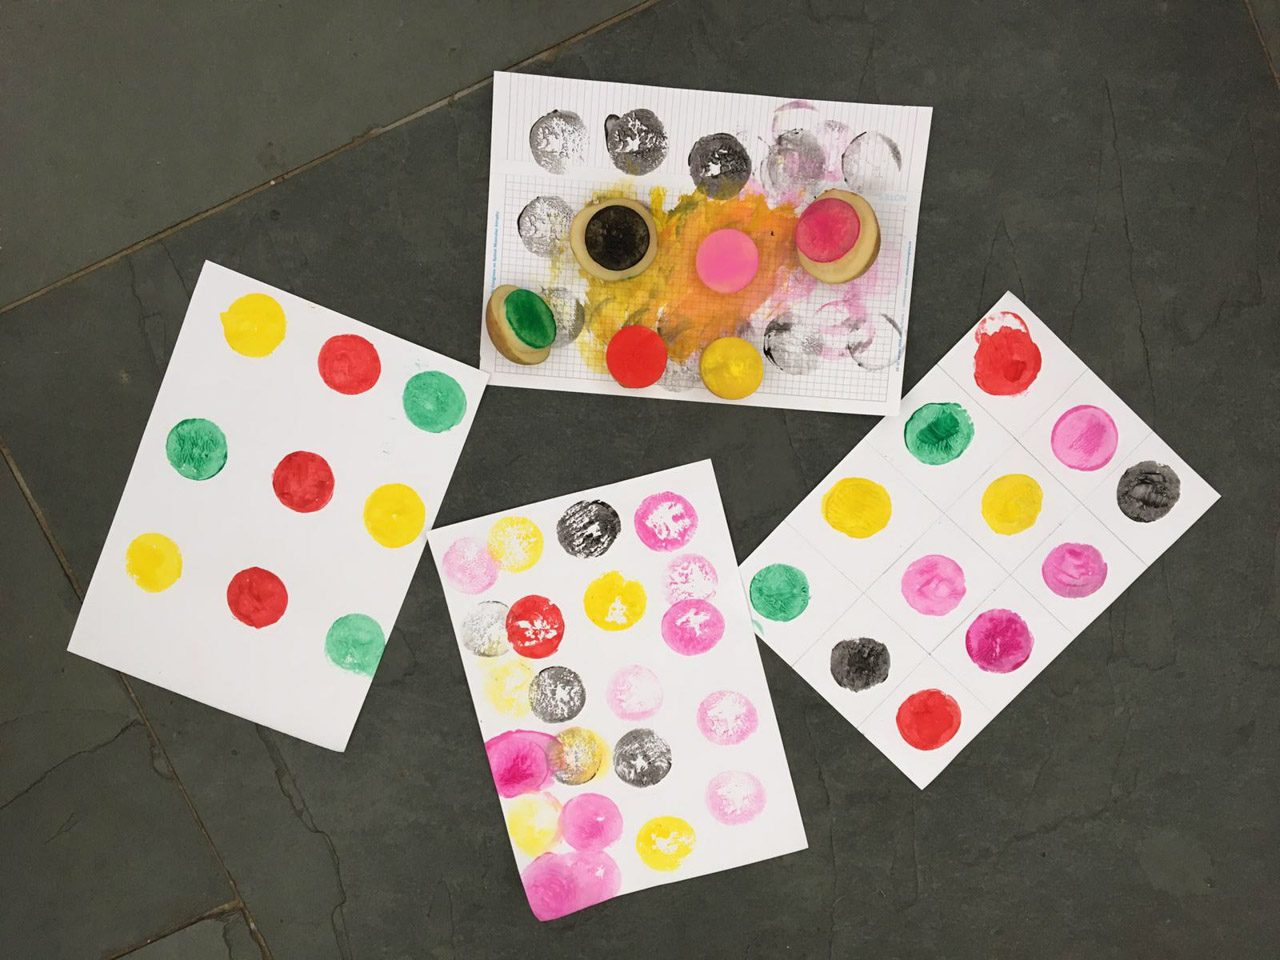 Dot-painting by Rosalyn & Martha, aged 8 and 5